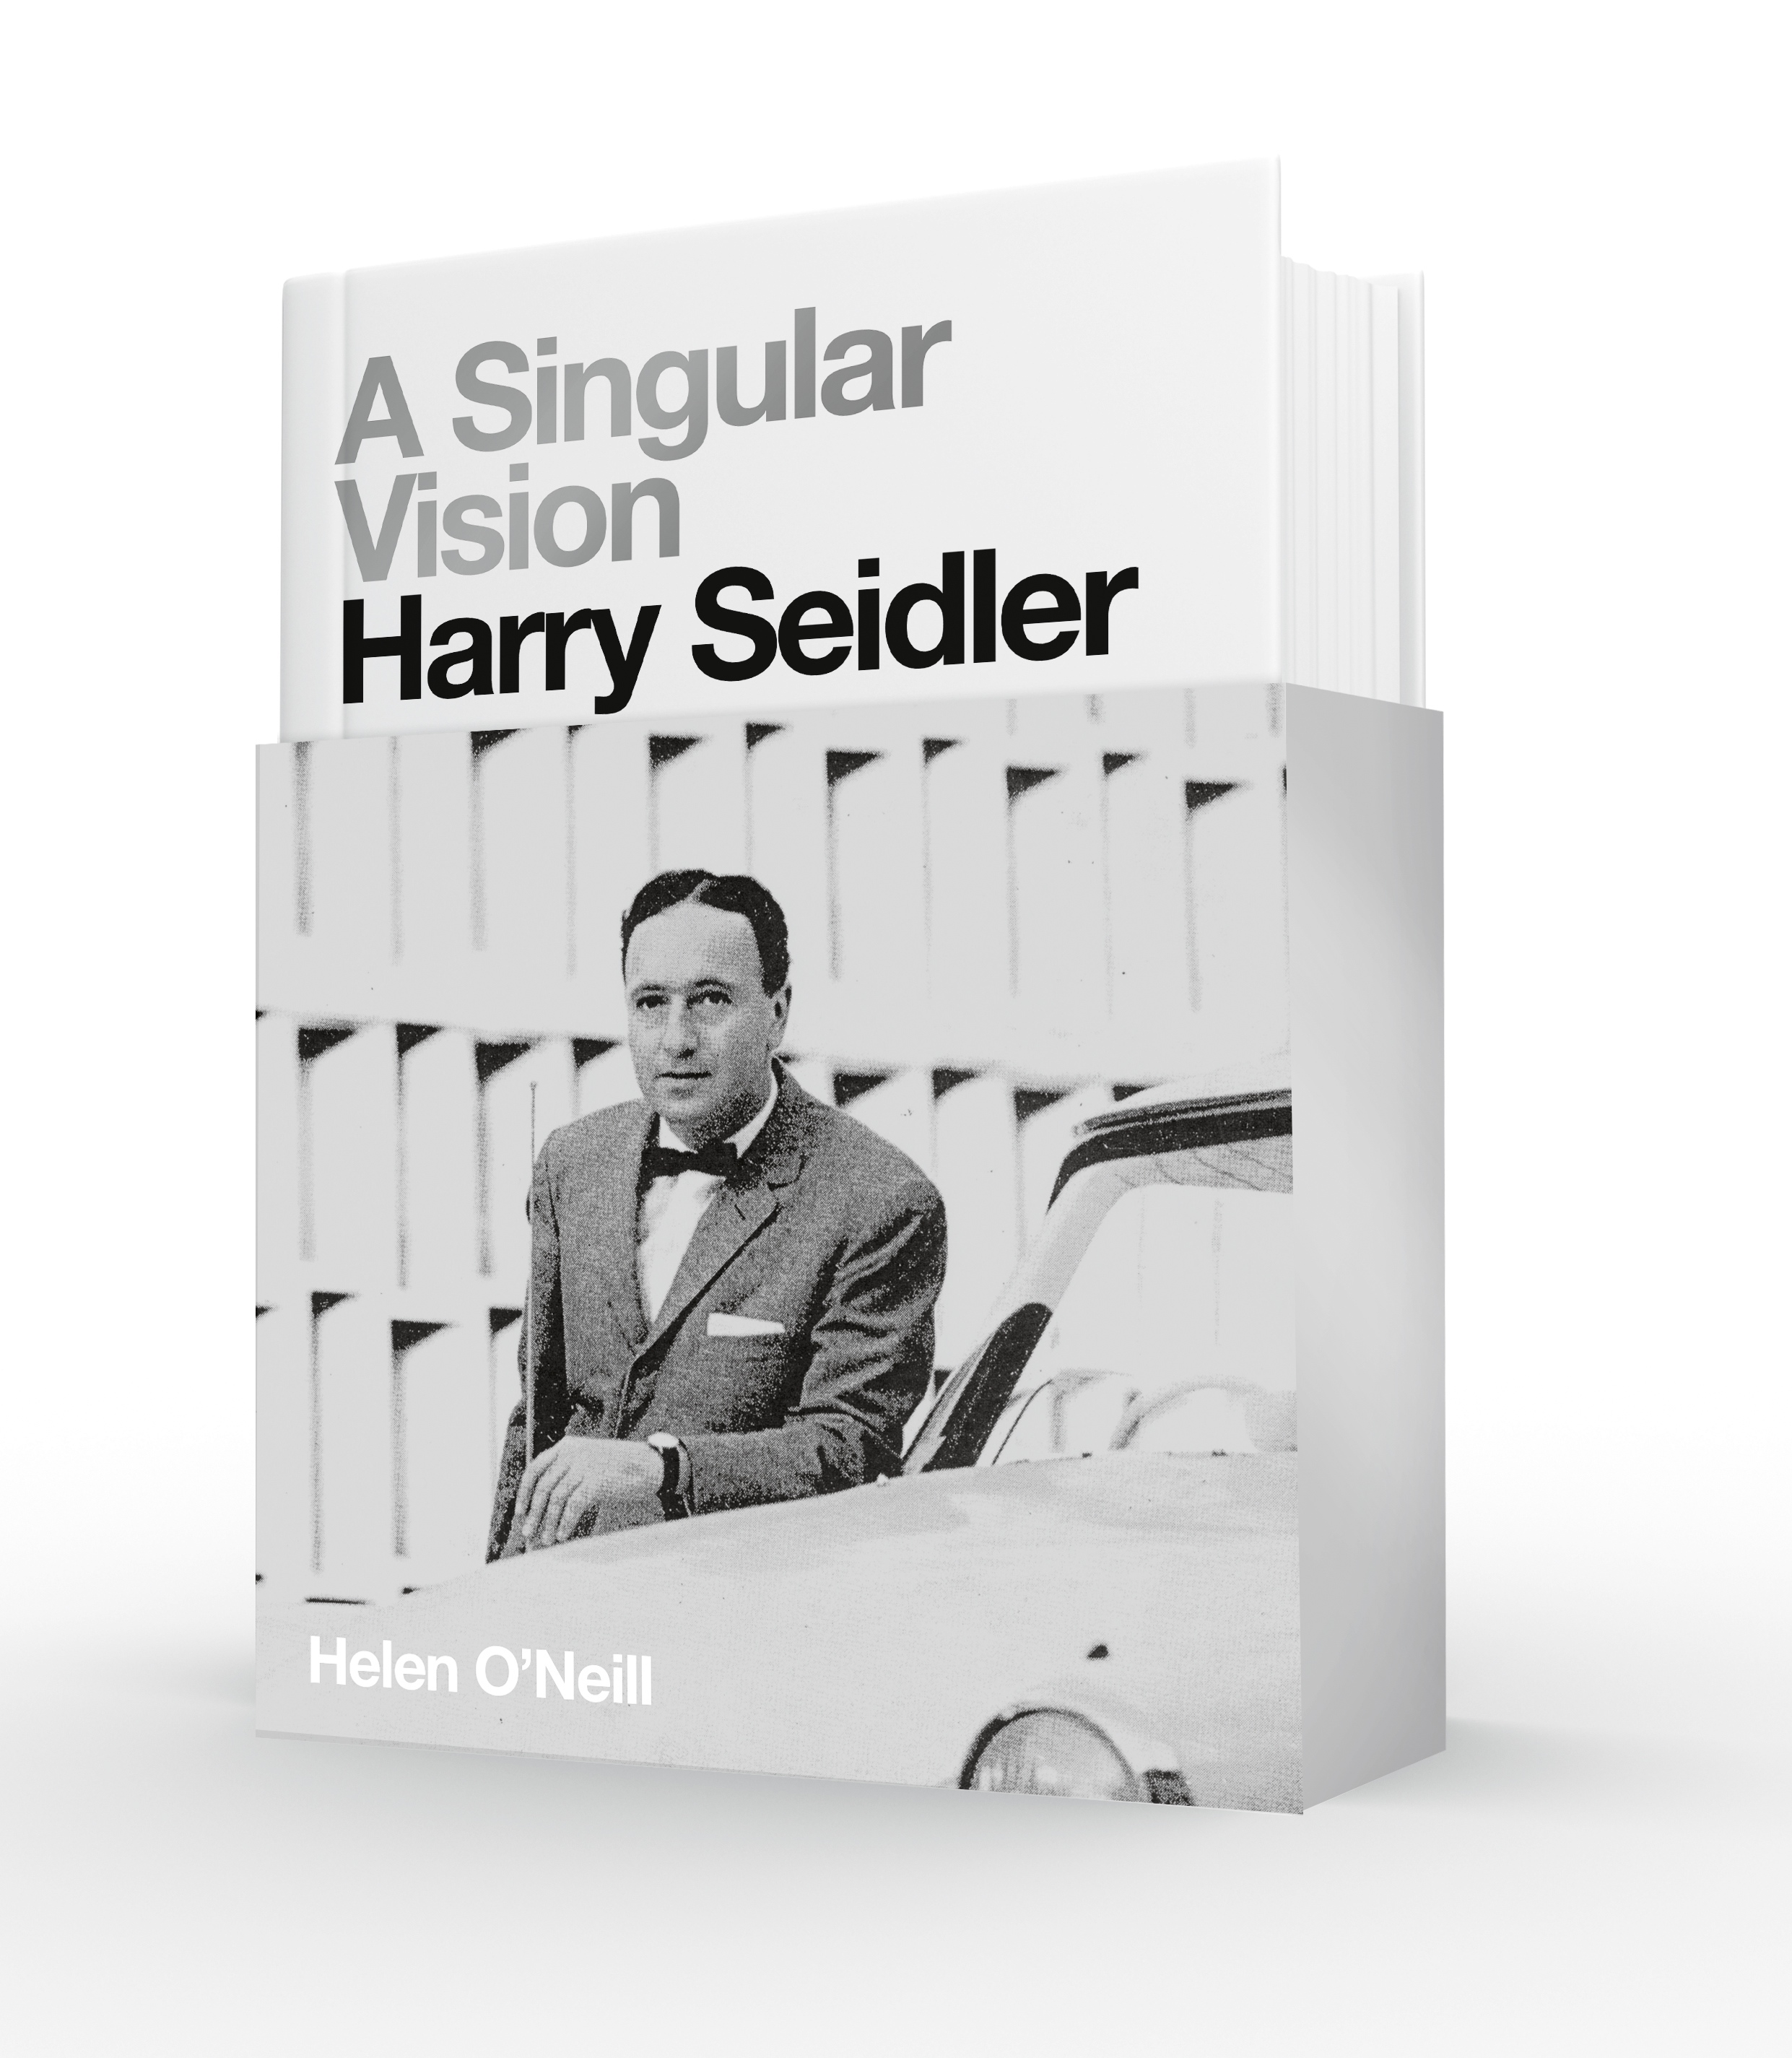 a biography of harry seidler born in vienna in 1923 Harry seidler, austrian-born australian architect (born june 25, 1923, vienna, austria—died march 9, 2006, killara, nsw, australia), brought modernism to australian architecture with striking and often controversial commercial and residential buildings.